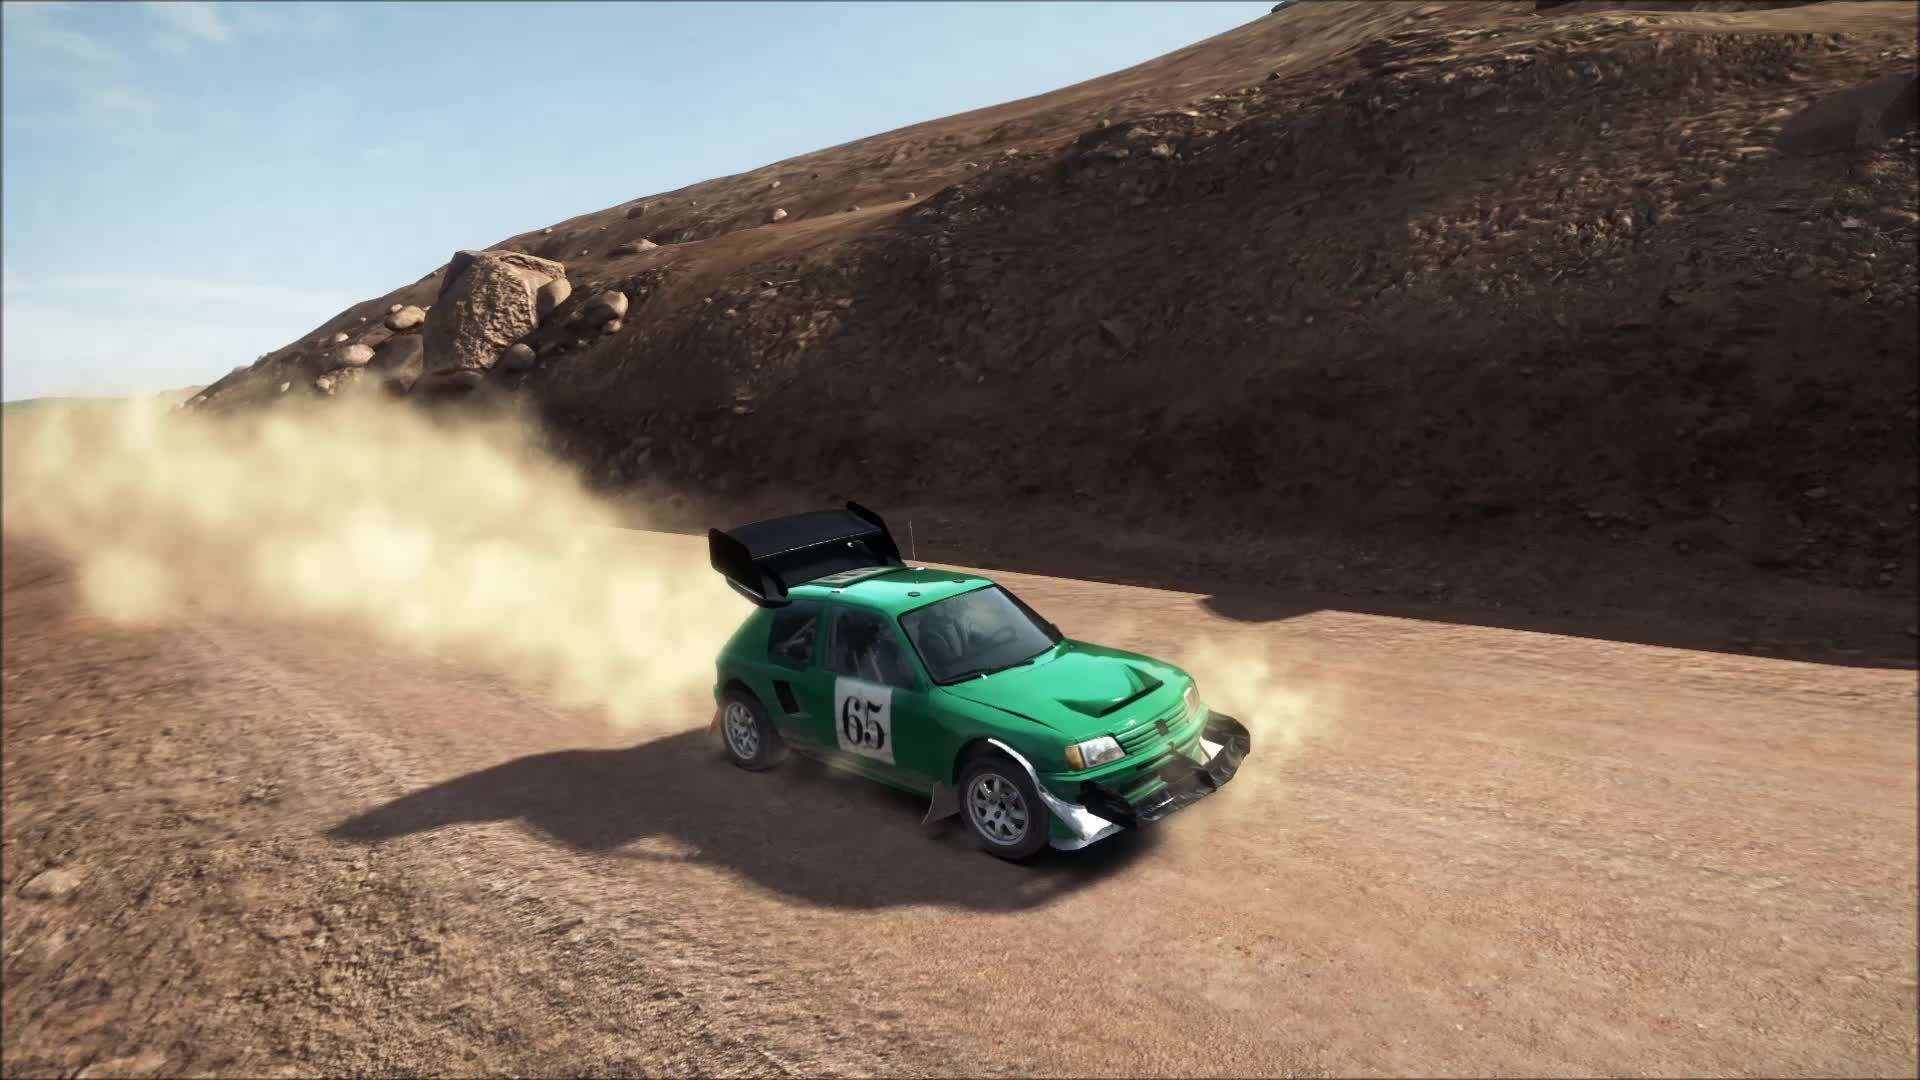 dirtgame, Strange and disconcerting 205 hillclimb glitch (reddit) GIFs